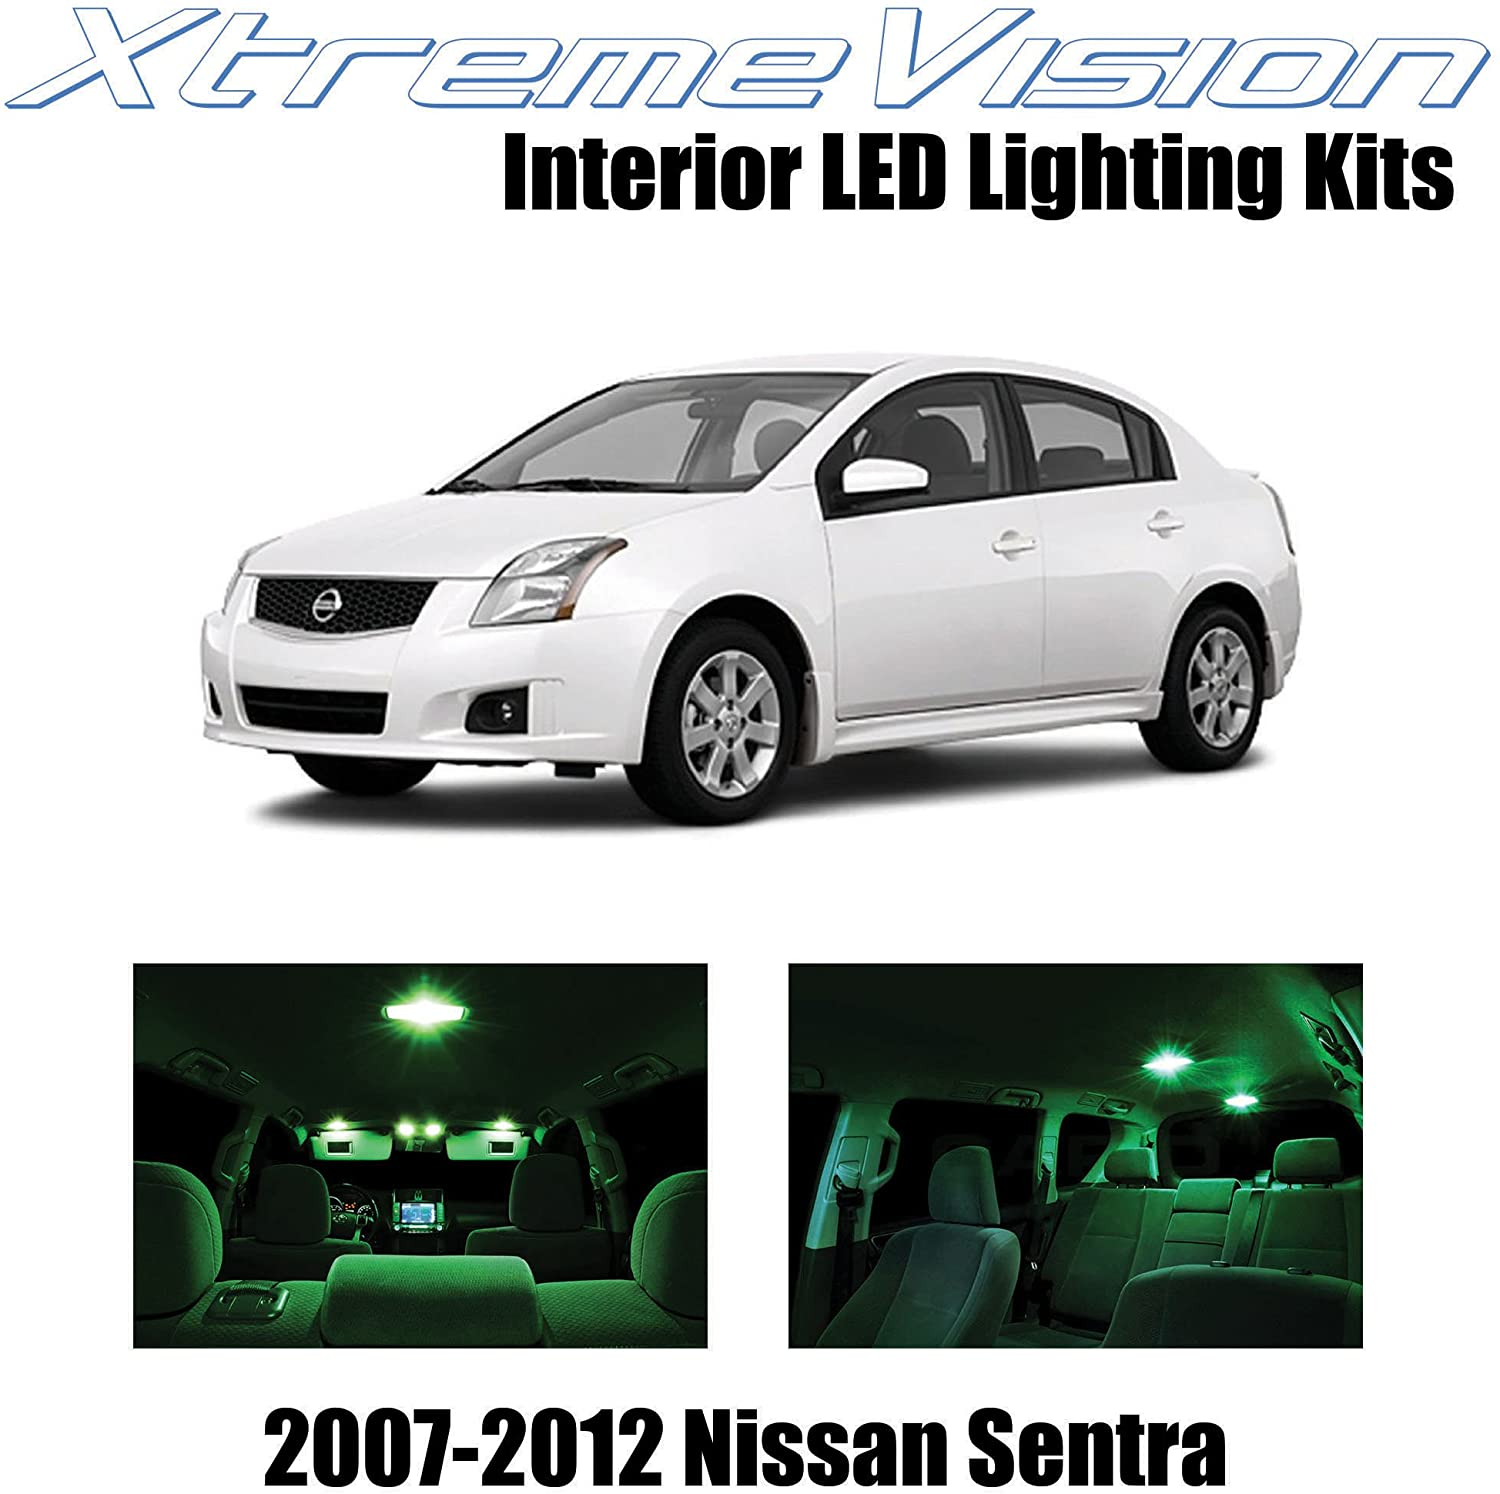 Xtremevision Interior LED for Nissan Sentra 2007-2012 (6 Pieces) Green Interior LED Kit + Installation Tool